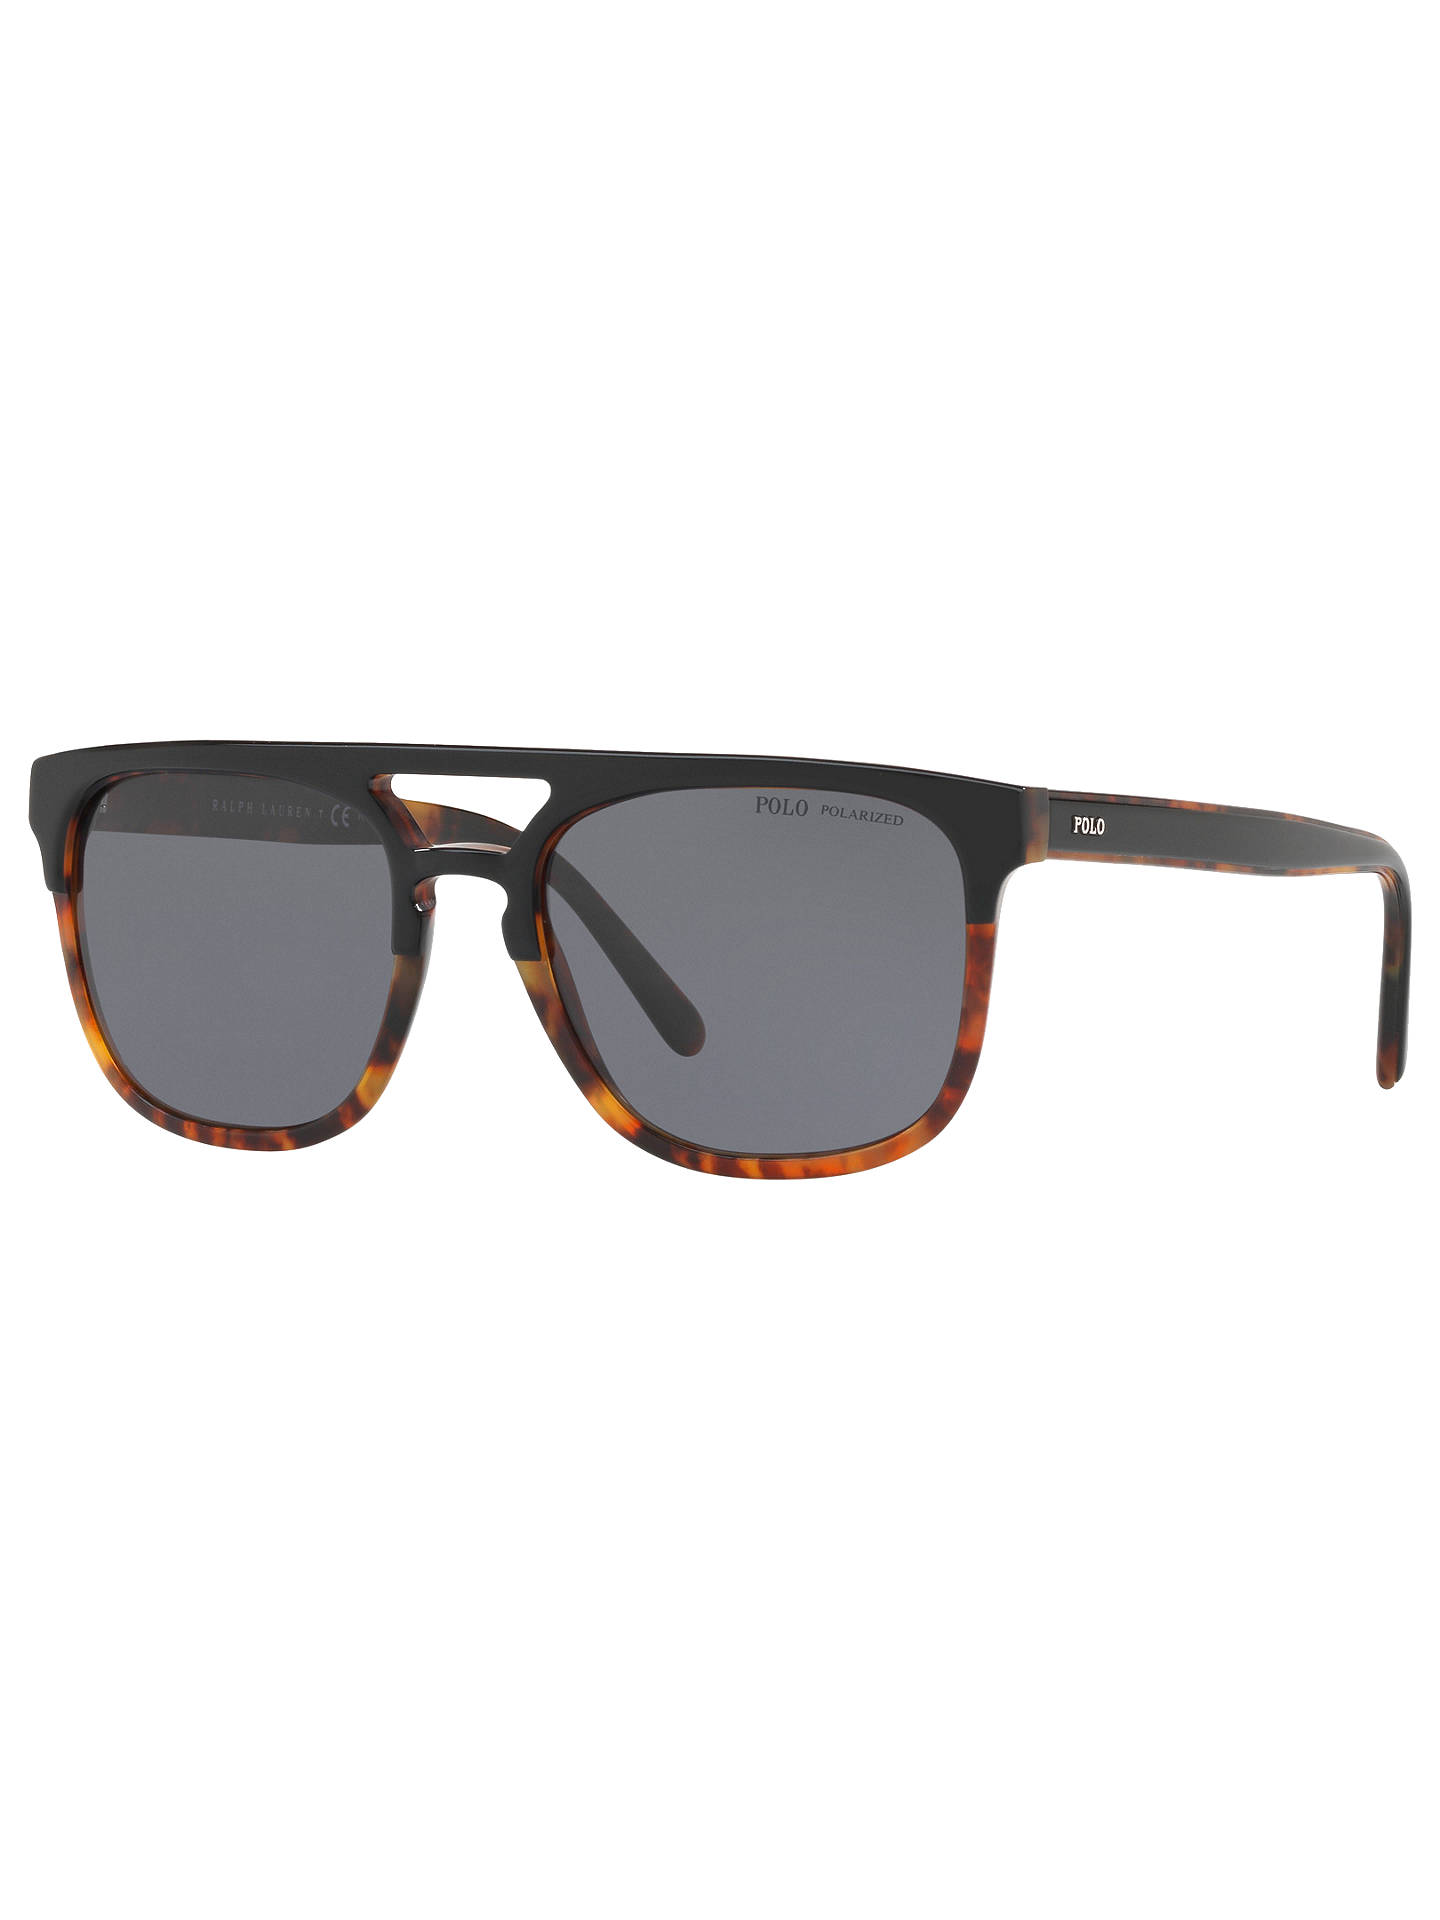 12ddc9d3f2 Polo Ralph Lauren PH4125 Men s Polarised D-Frame Sunglasses ...